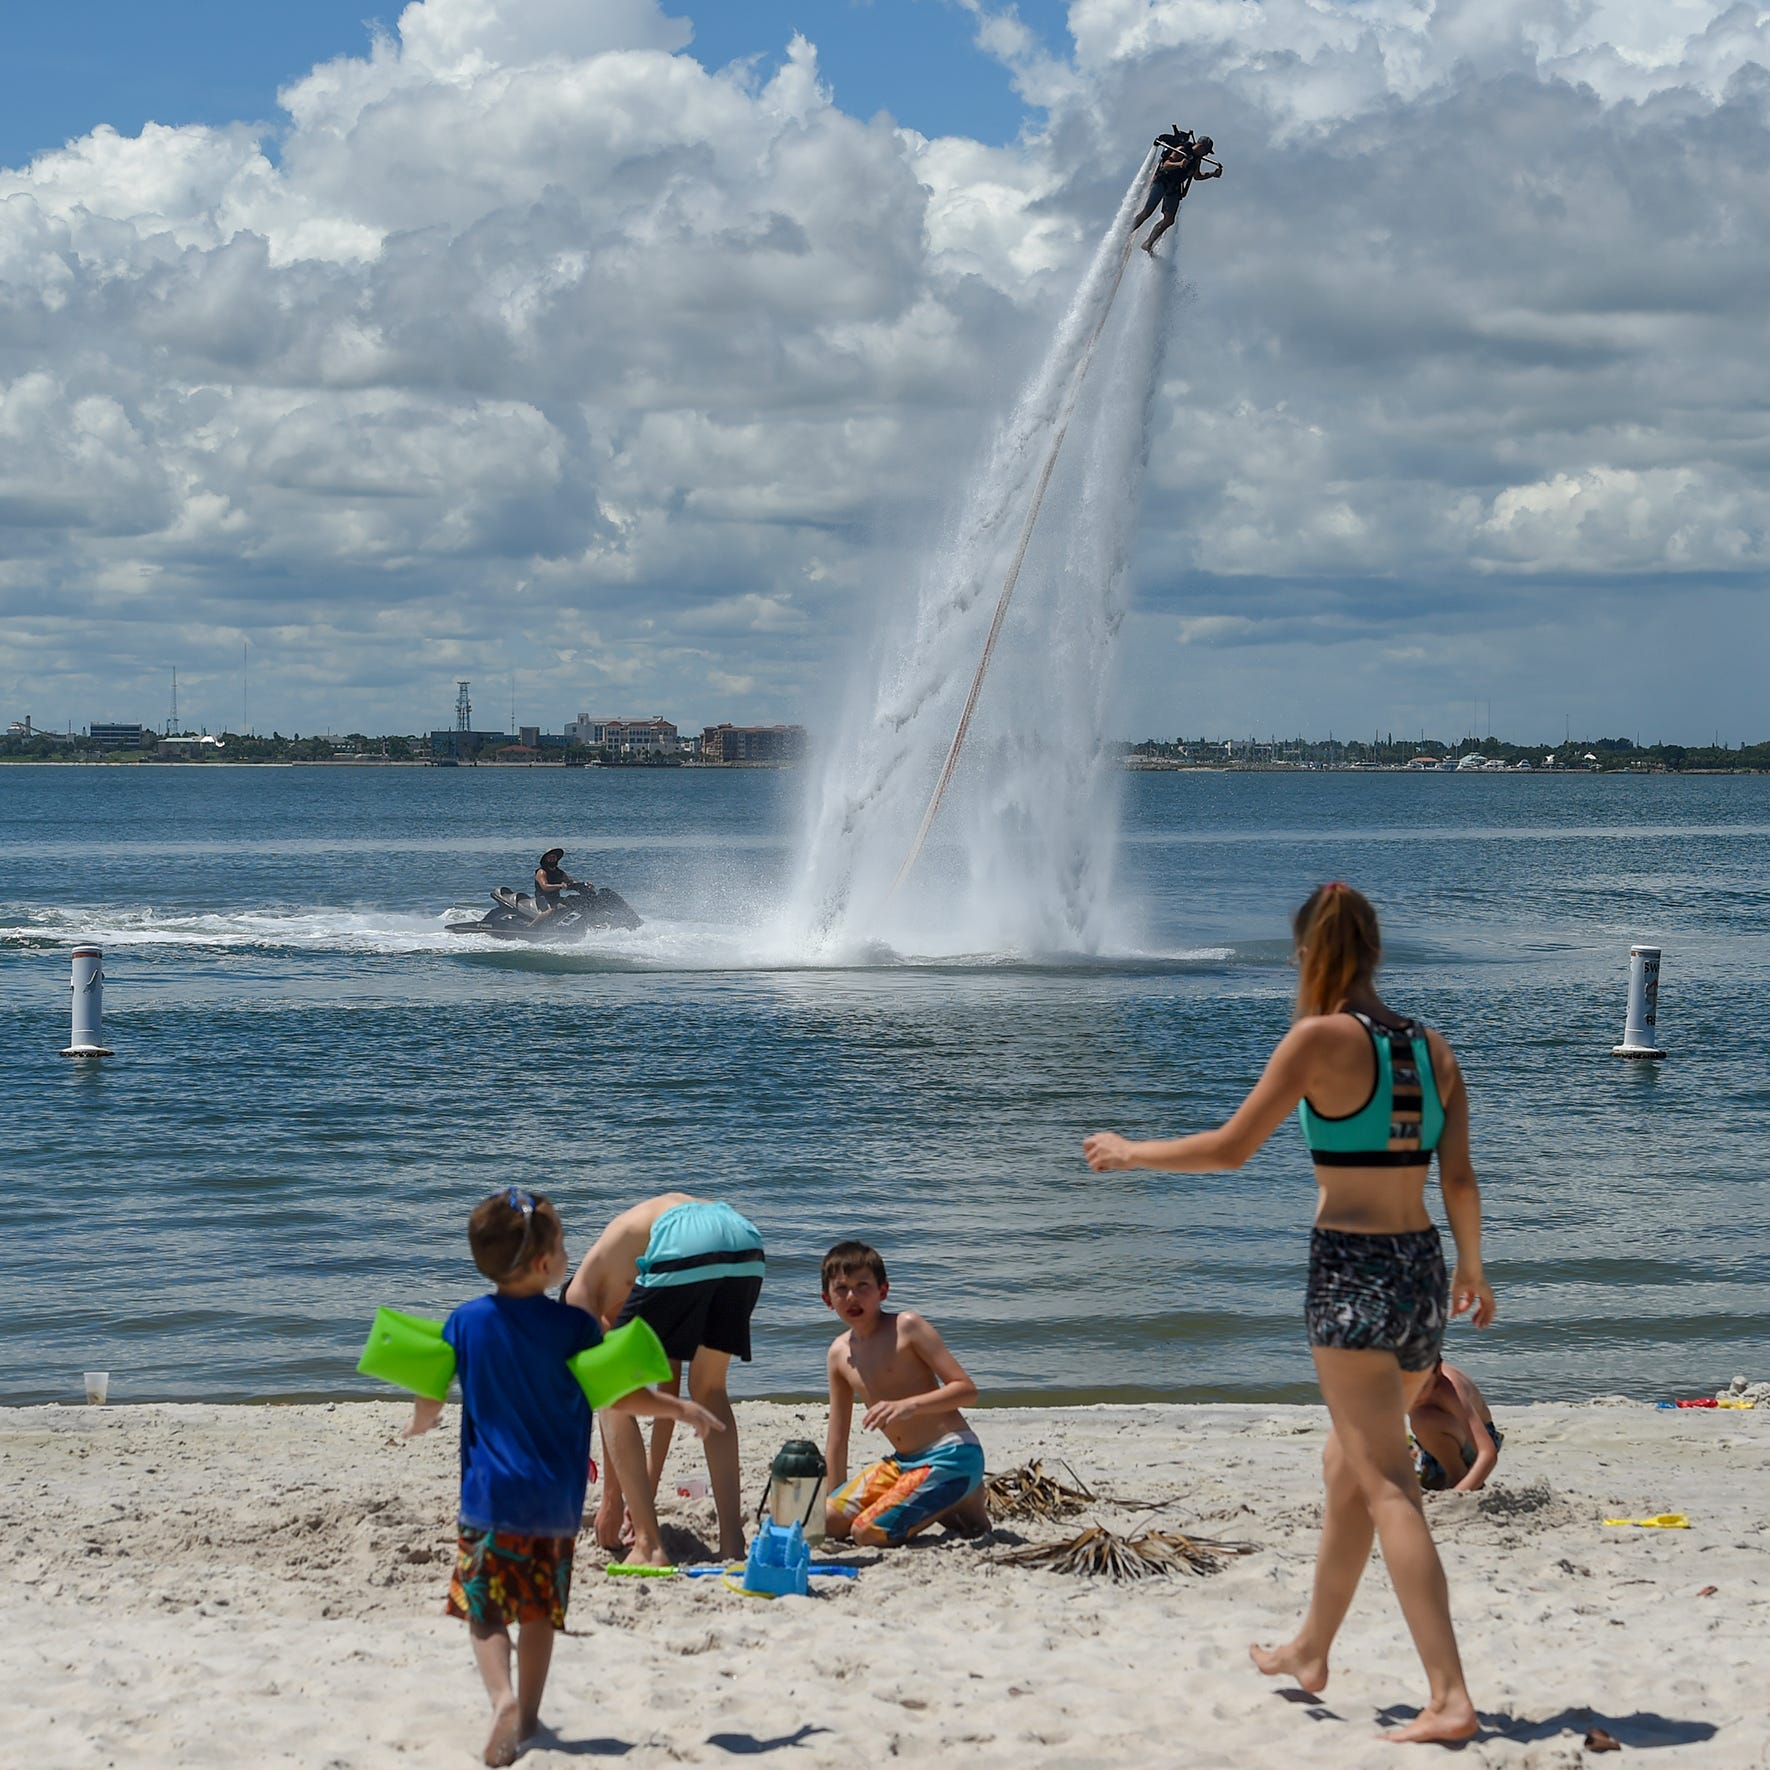 Fort Pierce wants tougher regulations for personal watercraft at city parks